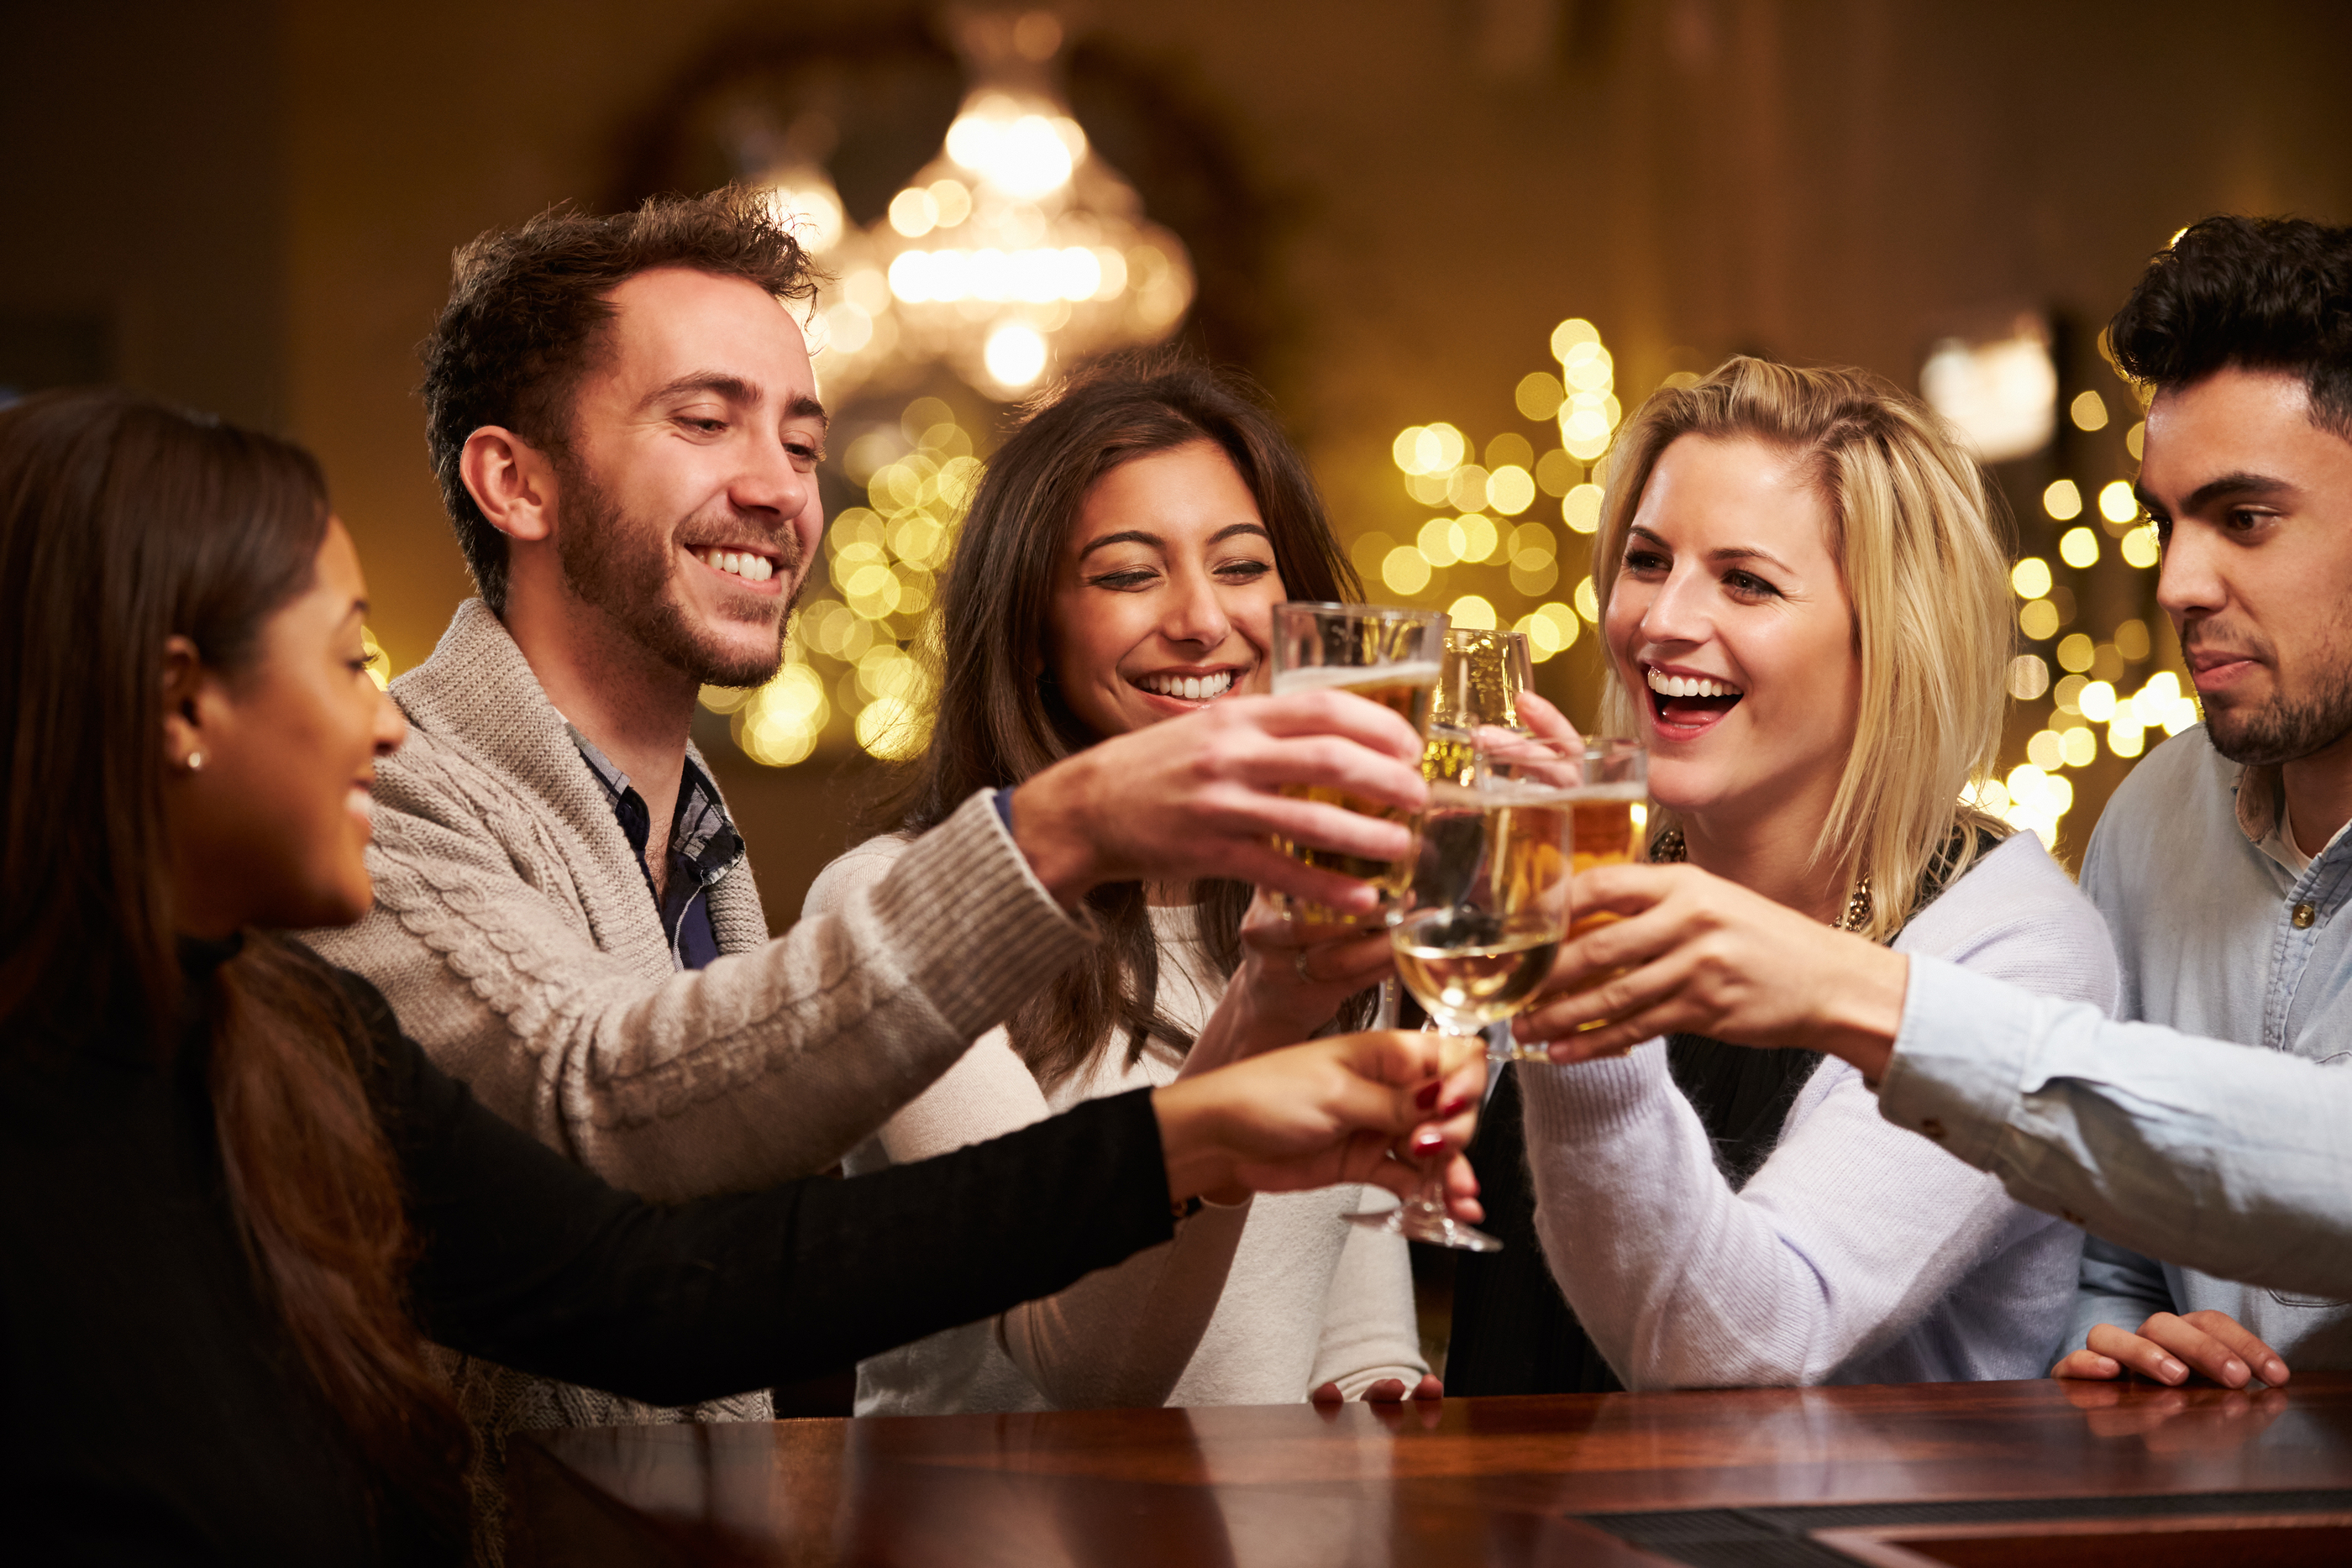 drinking alcohol in the UAE